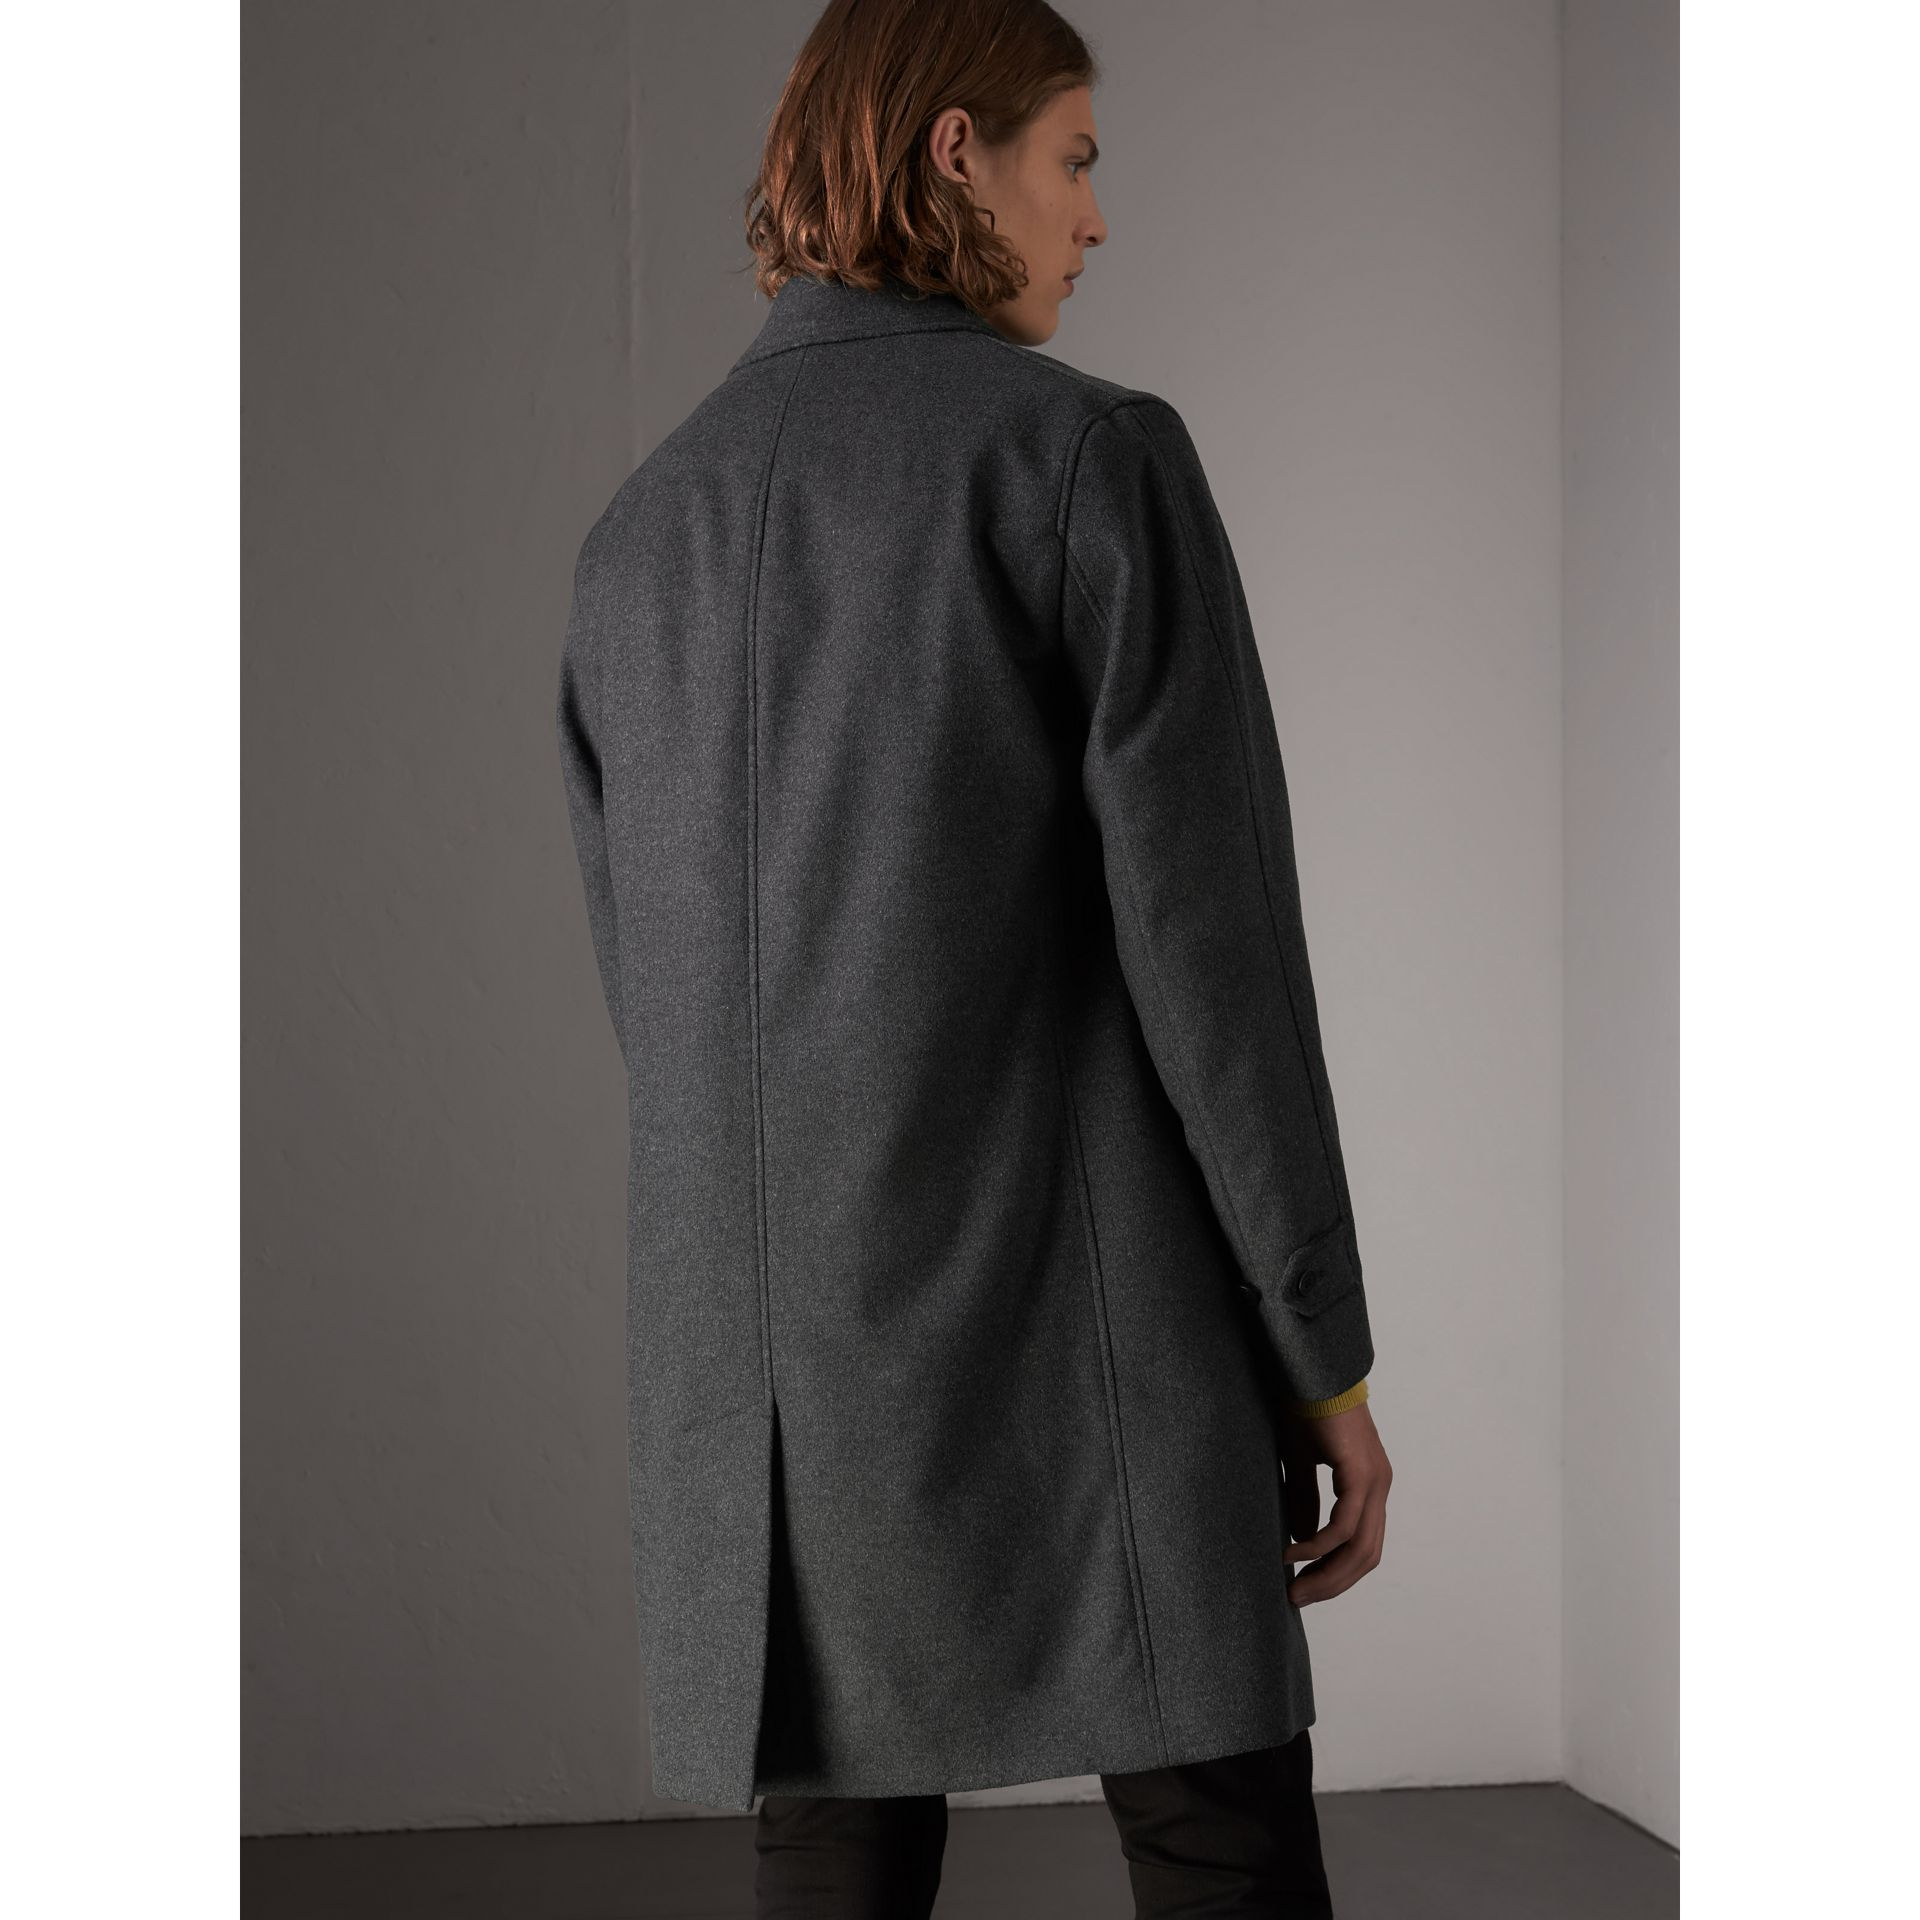 Wool Cashmere Blend Car Coat with Detachable Gilet in Dark Grey Melange - Men | Burberry Australia - gallery image 2